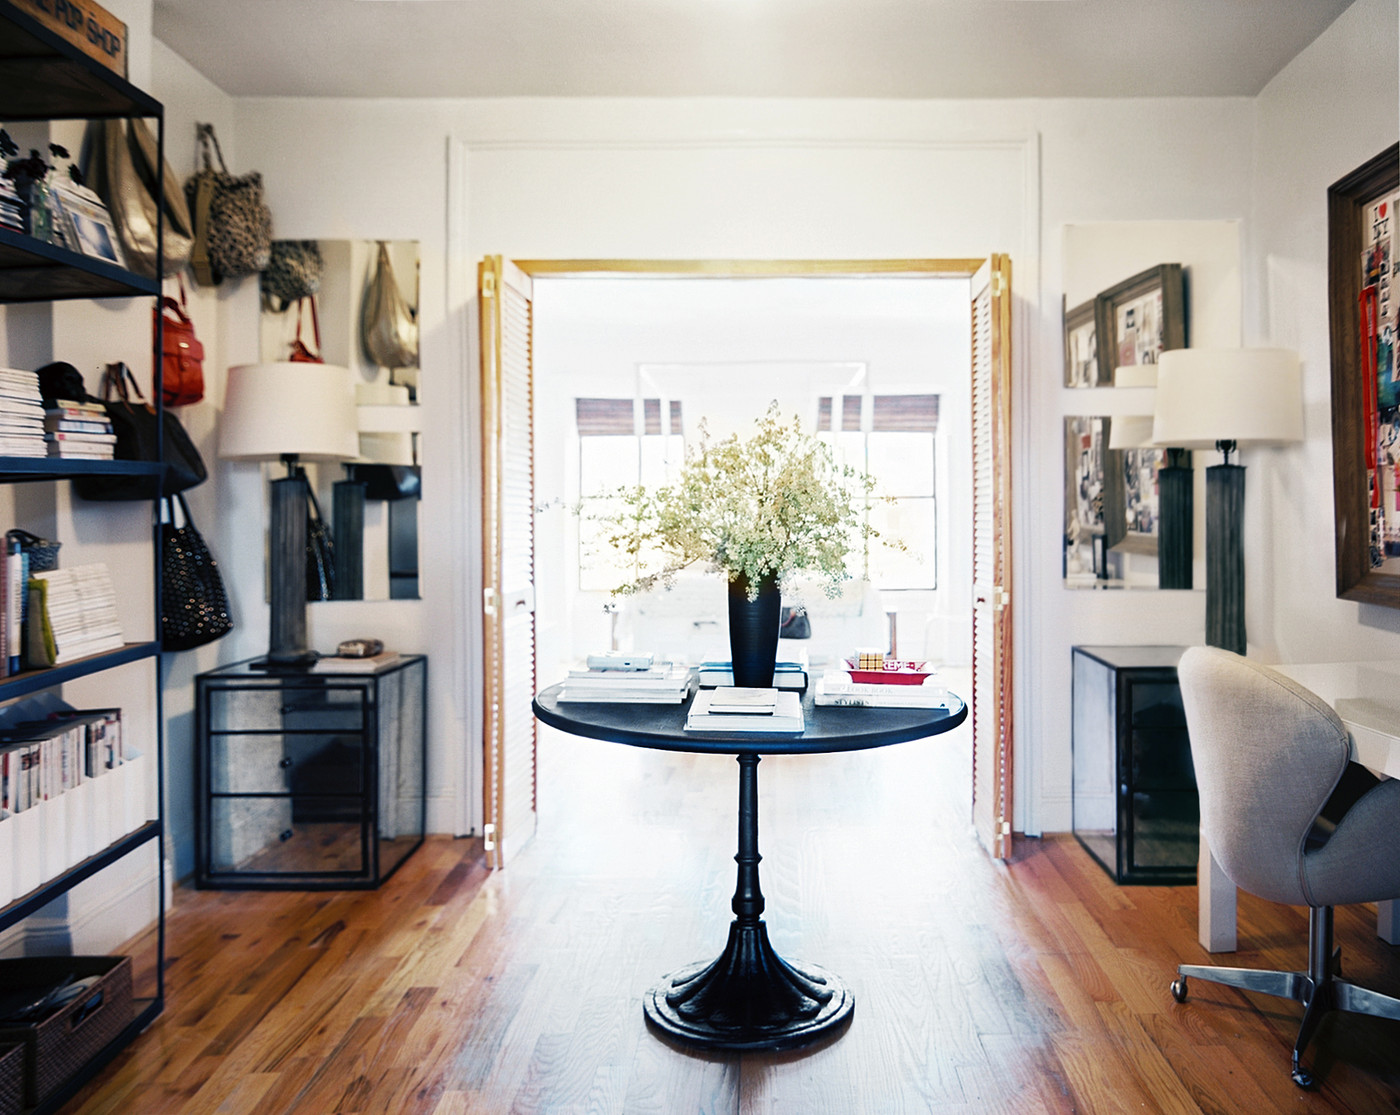 The middle room after apartment makeover how to maximize your small space lonny - Maximize small spaces property ...